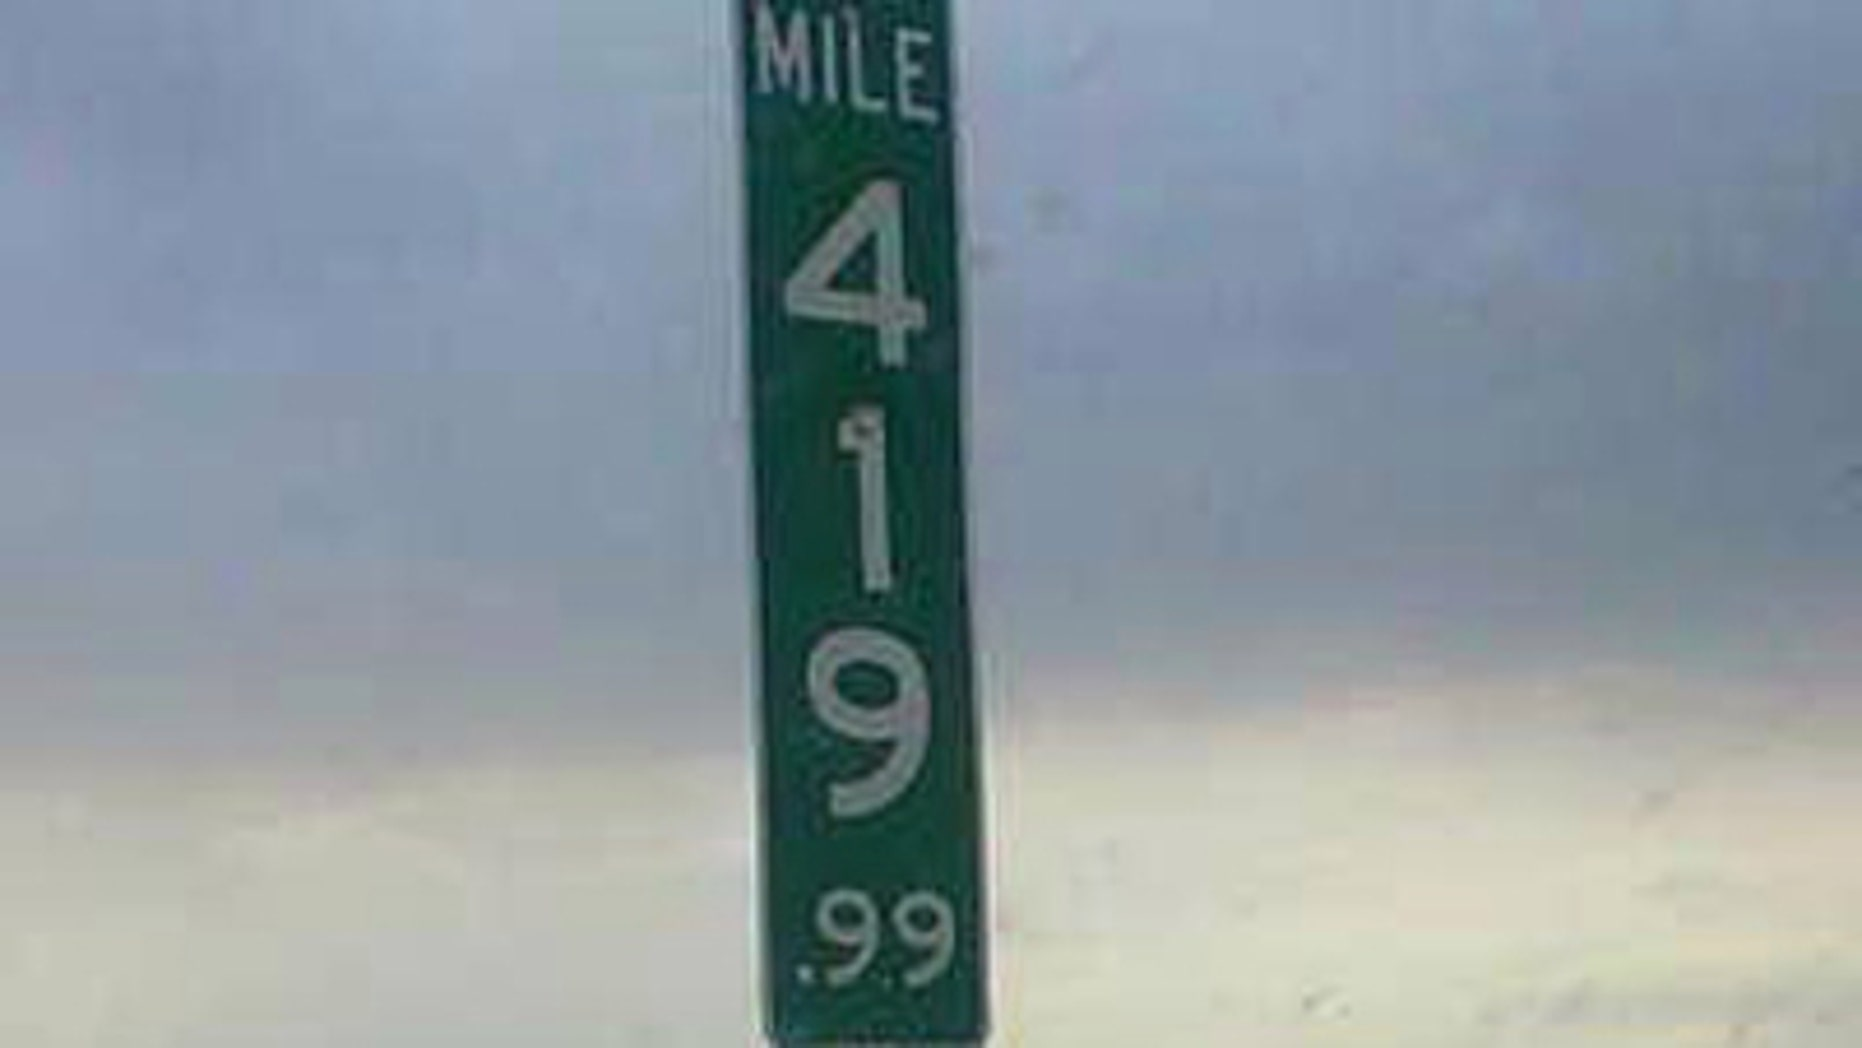 This undated photo shows the new 419.99 mile marker that replaces the 420 mile marker after multiple thefts.